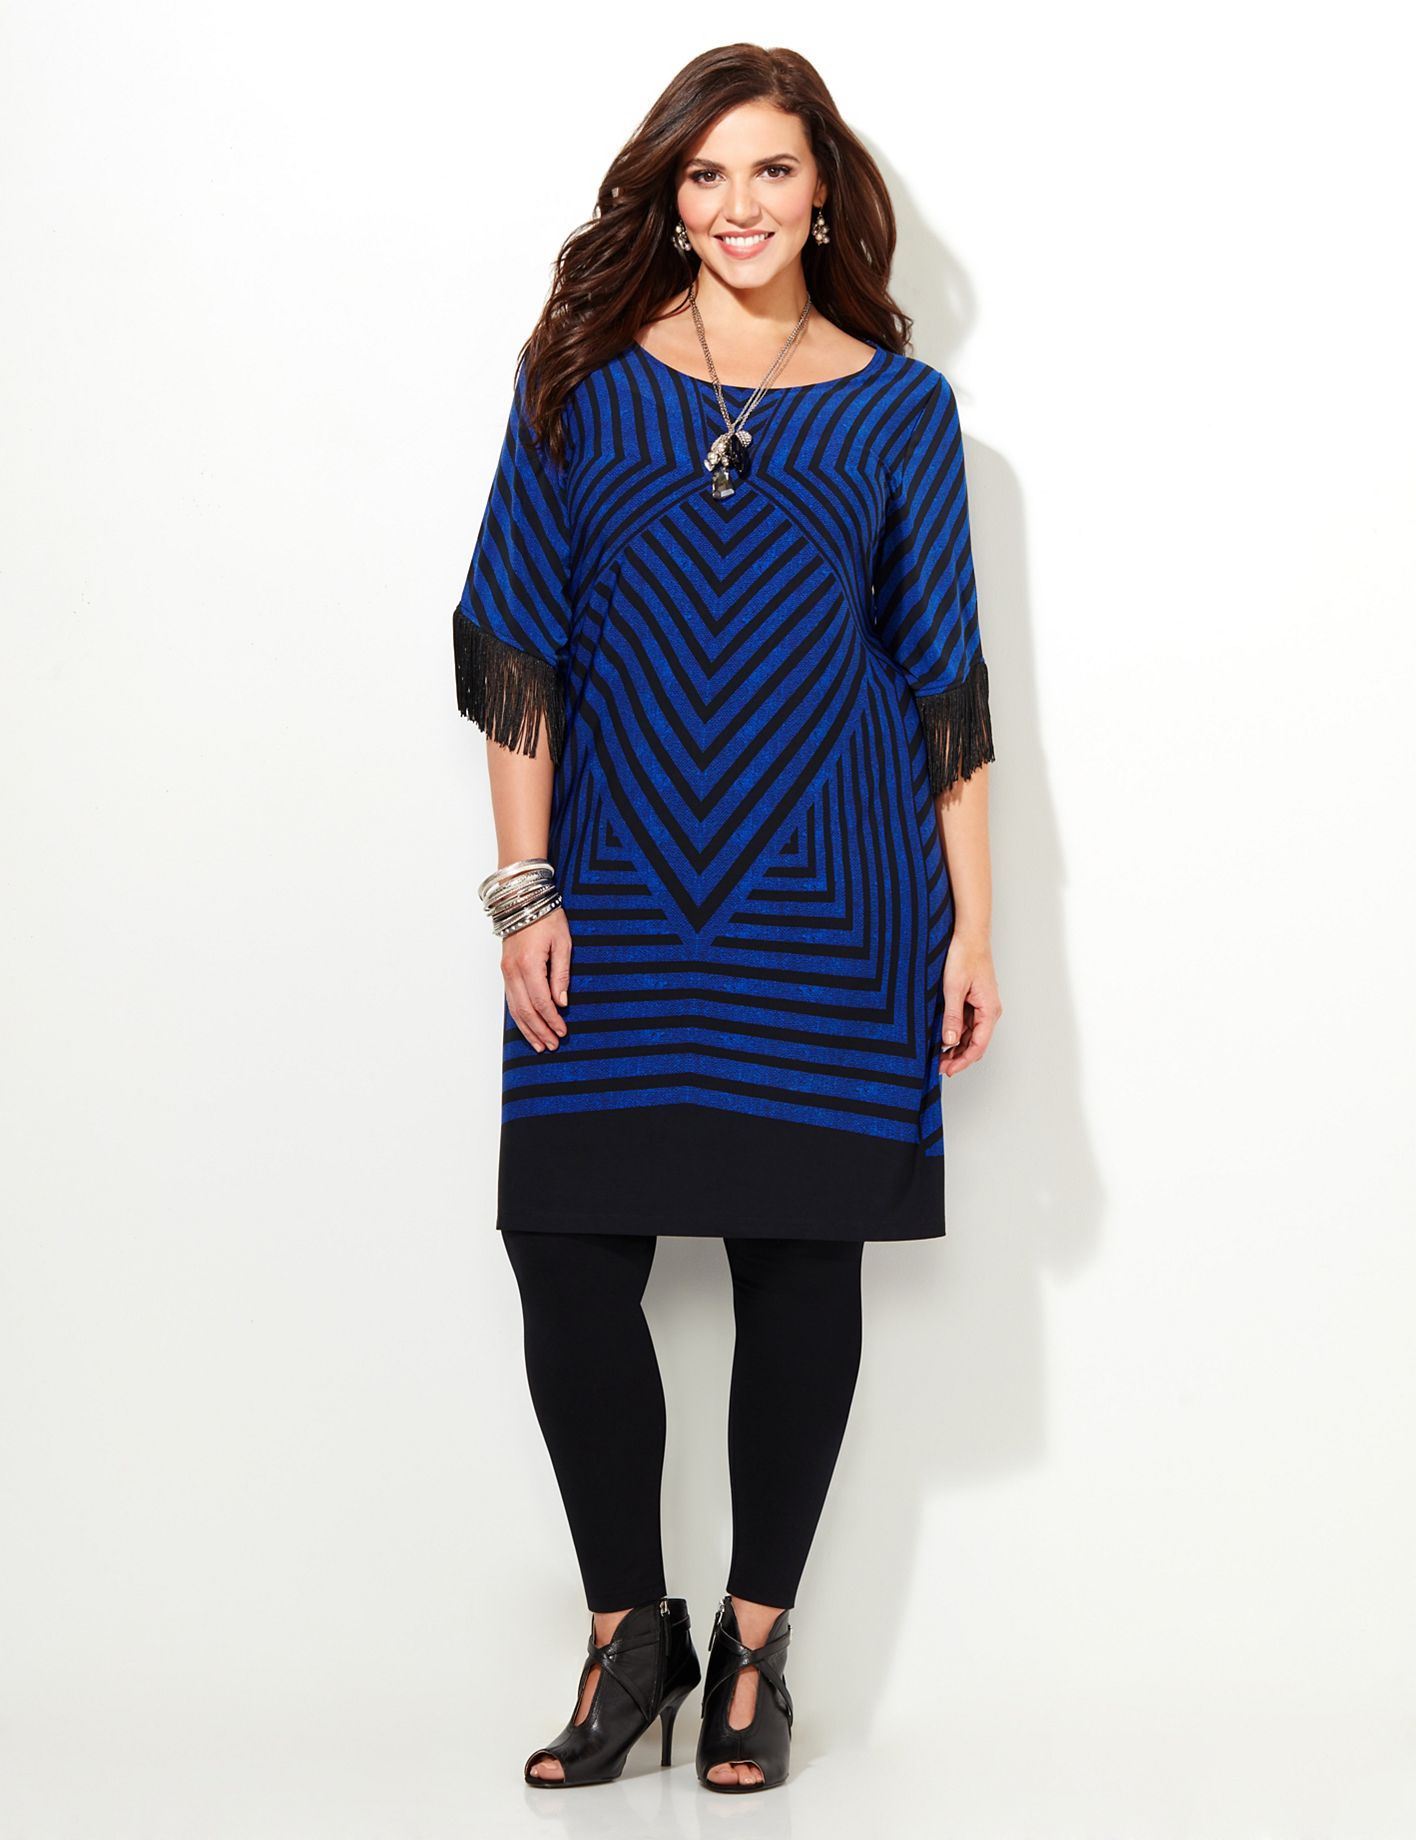 Illusive Fringe Dress | Catherines  Our Art Deco inspired dress has an allover geometric print with a bold pop of color. Fringe lines the sleeve ends for a awe-inspiring finish. Scoop neckline. Short sleeves. Catherines dresses are expertly designed for the plus size woman. #catherines #catherinesplus #plussize #plussizefashion #fringe